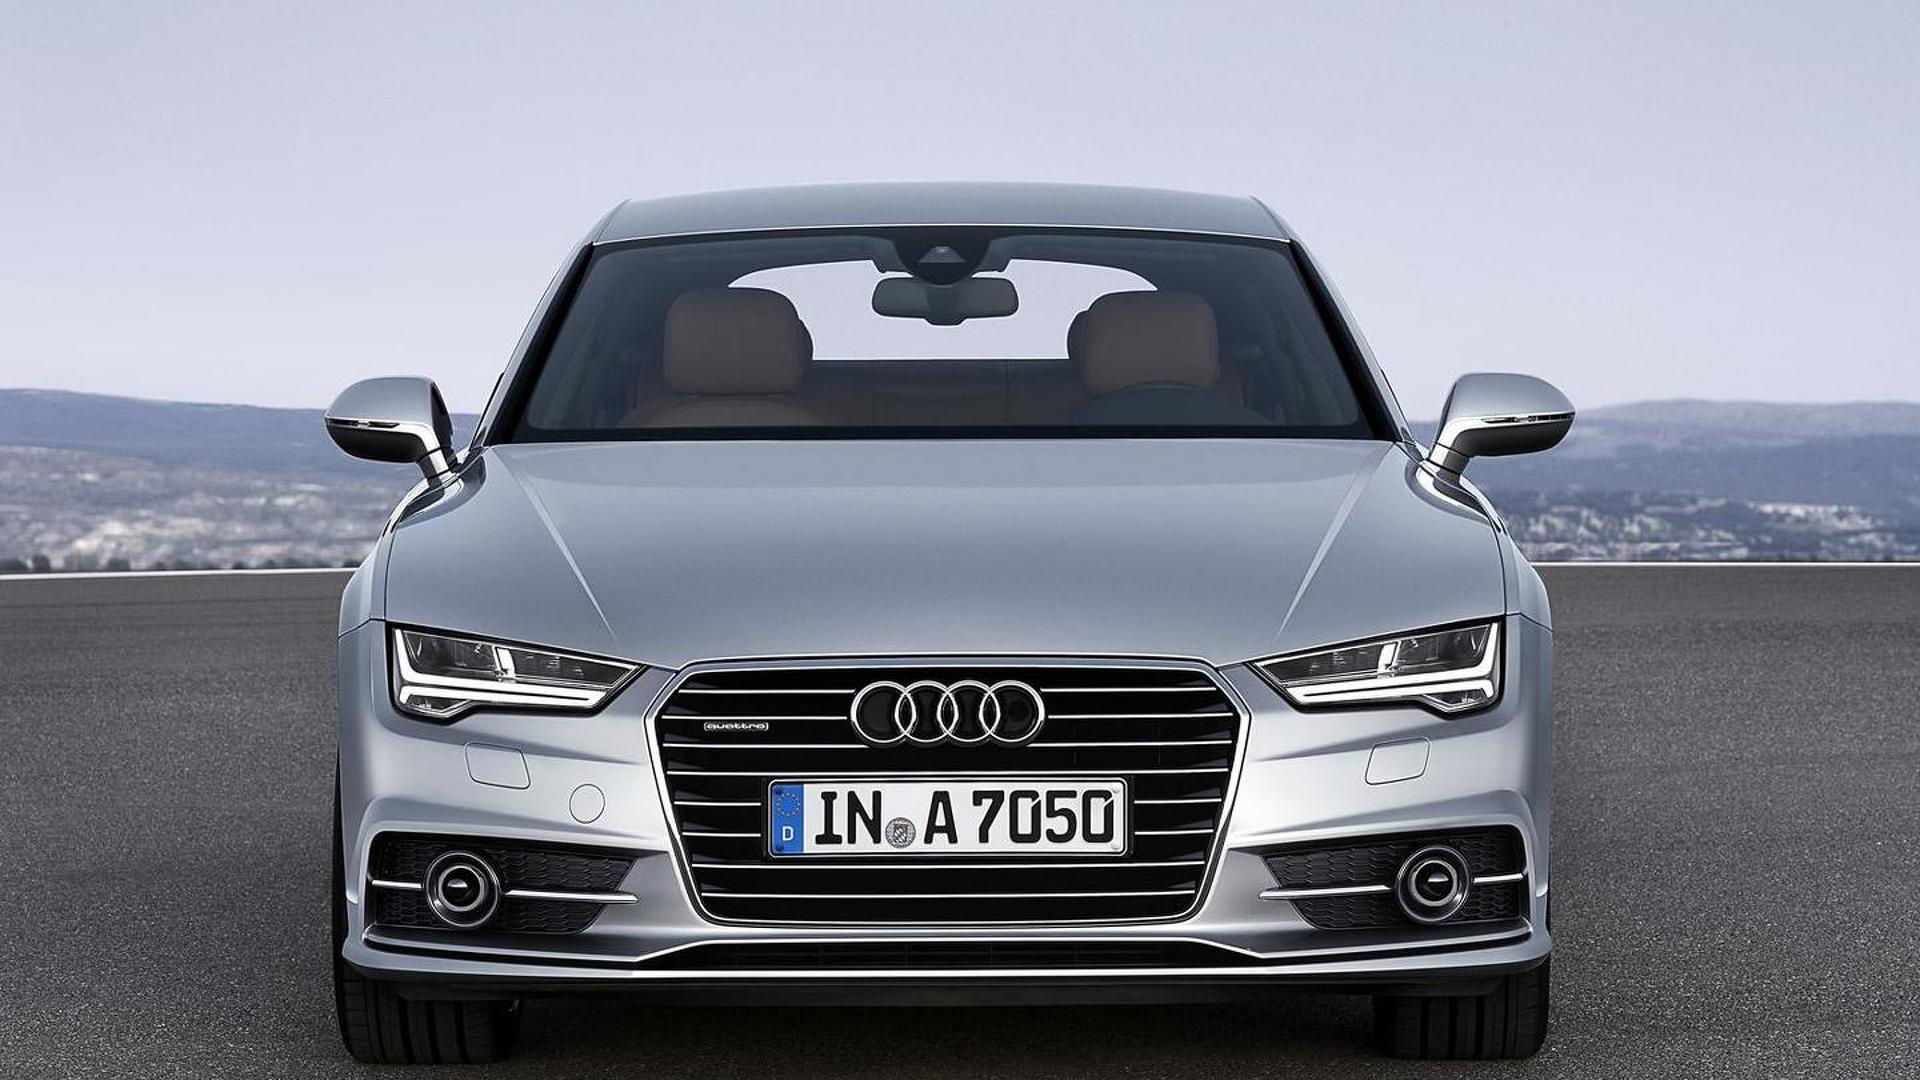 Audi A7s7 Sportback Facelift Goes Official With Matrix Led Headlights